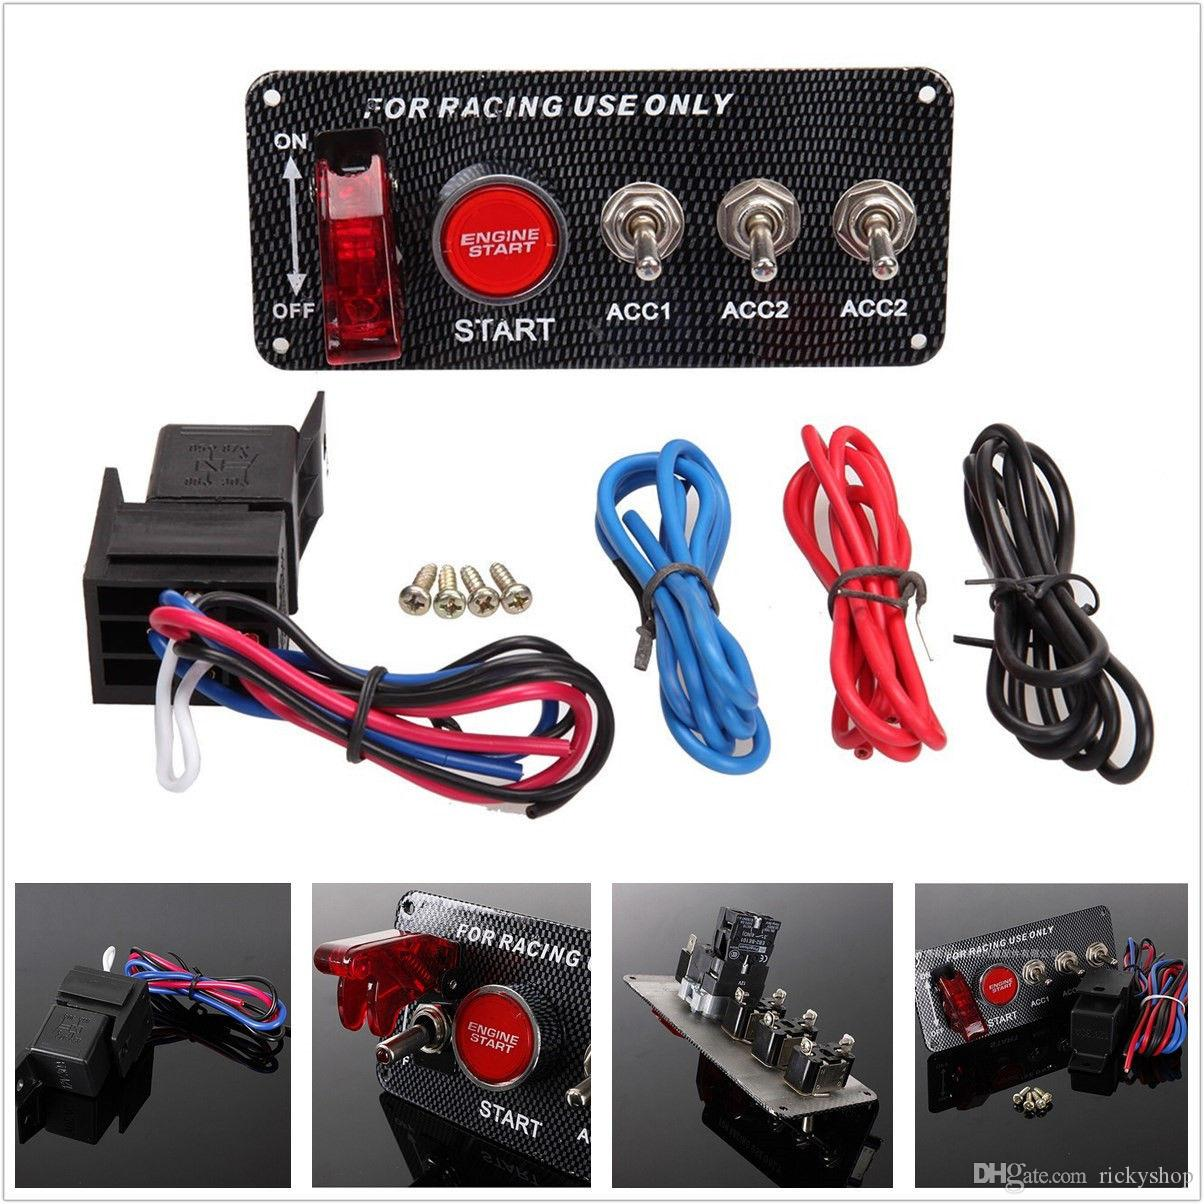 hight resolution of race car ignition switch panel wiring wiring diagram operations2019 carbon fiber race car ignition accessory engine